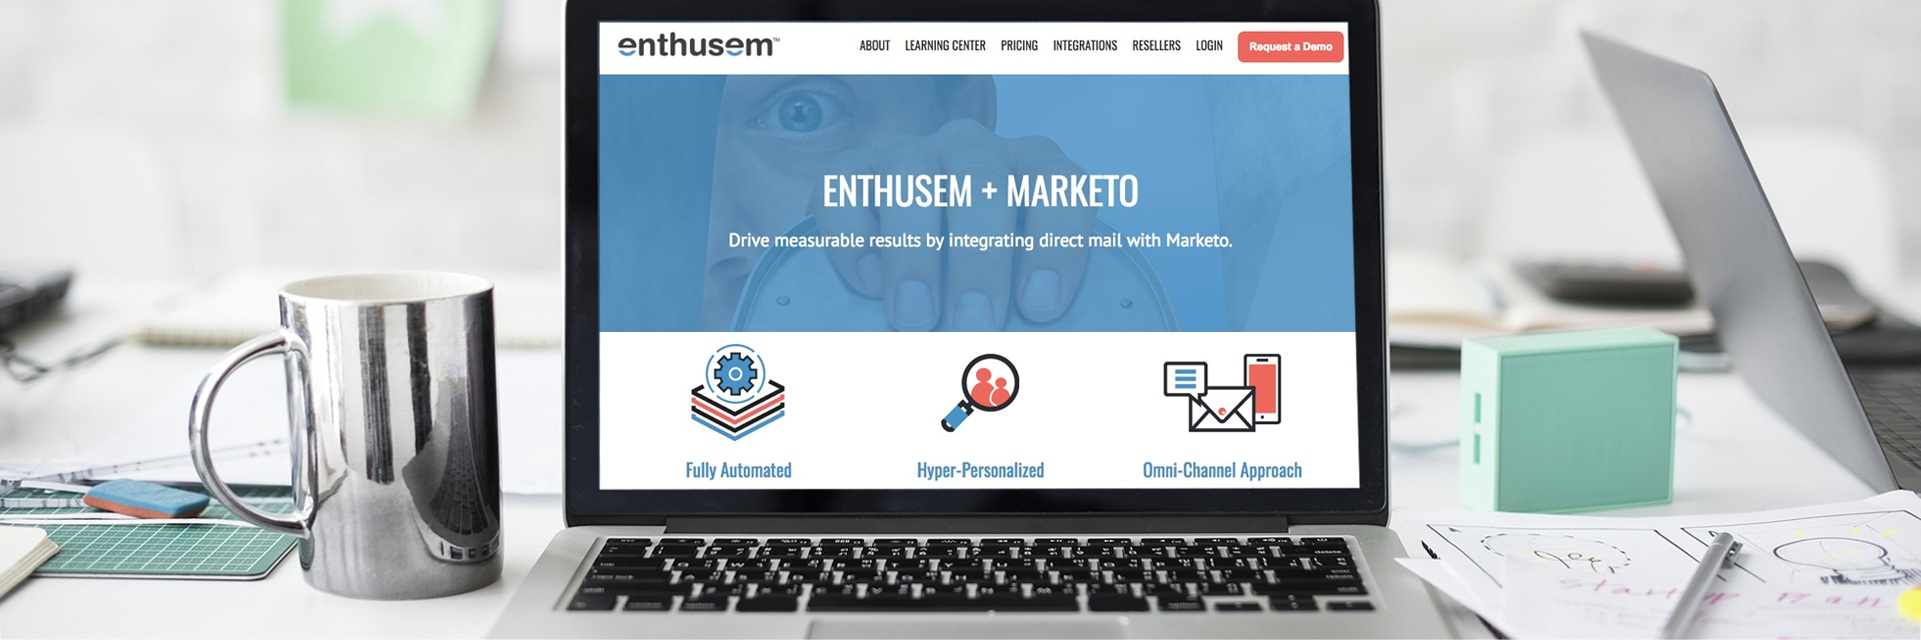 Enthusem Announces Partnership with Marketo®